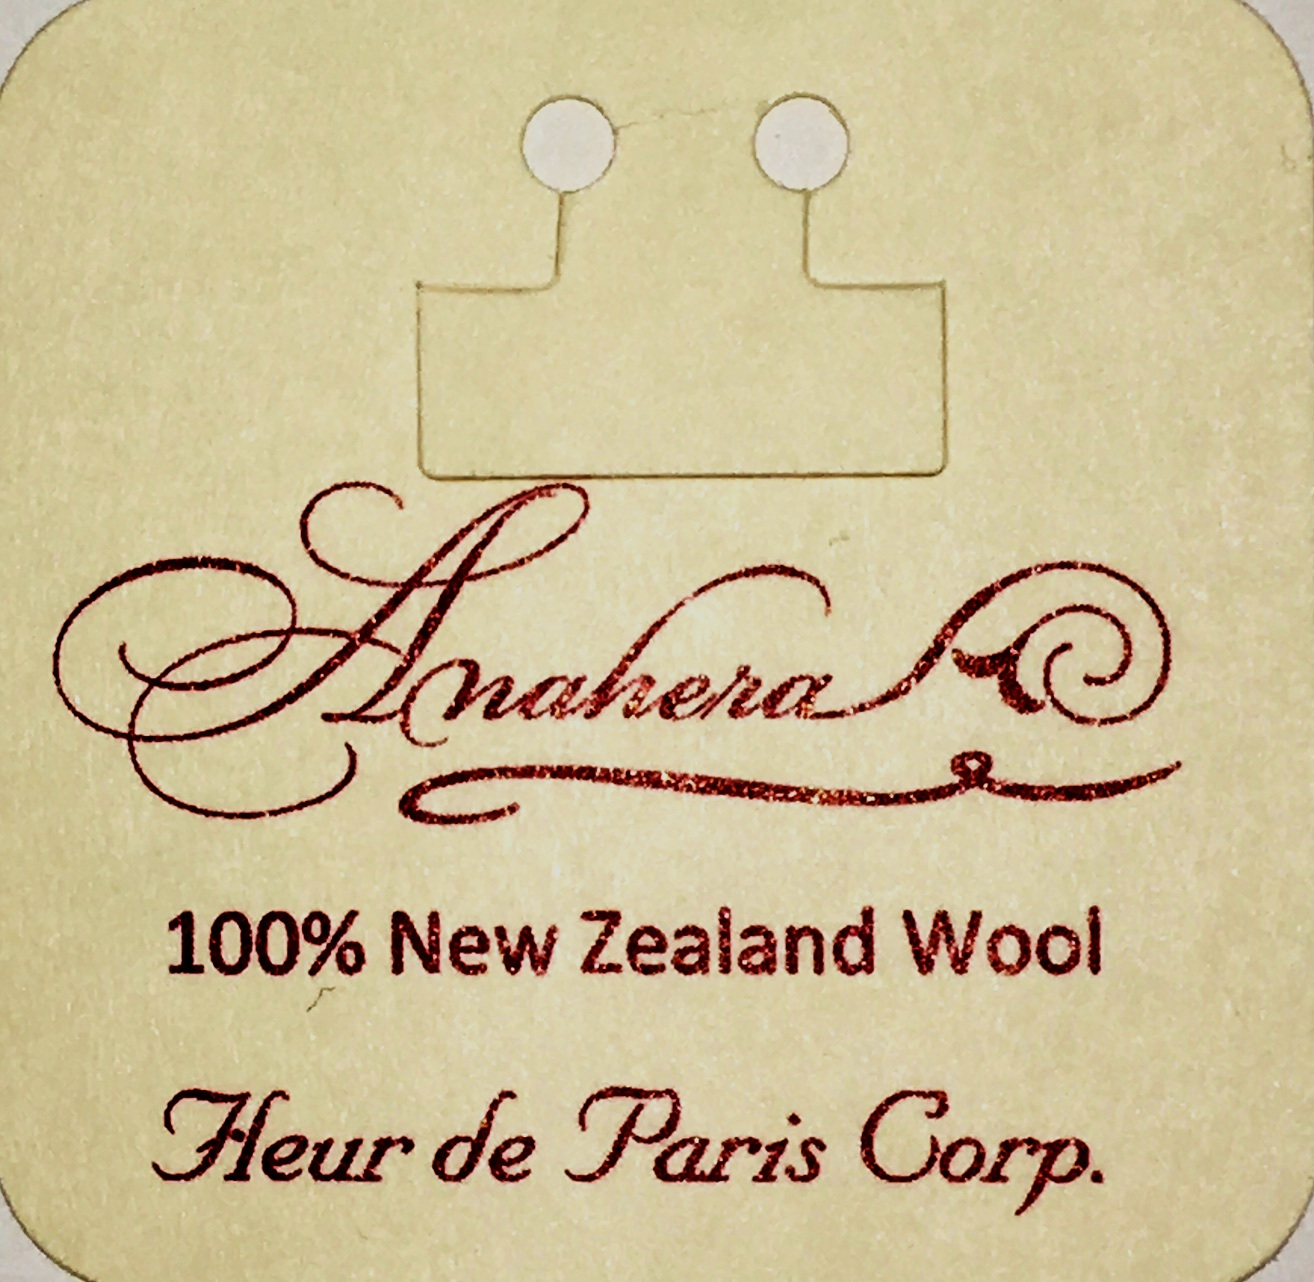 Label for Anahera yarn